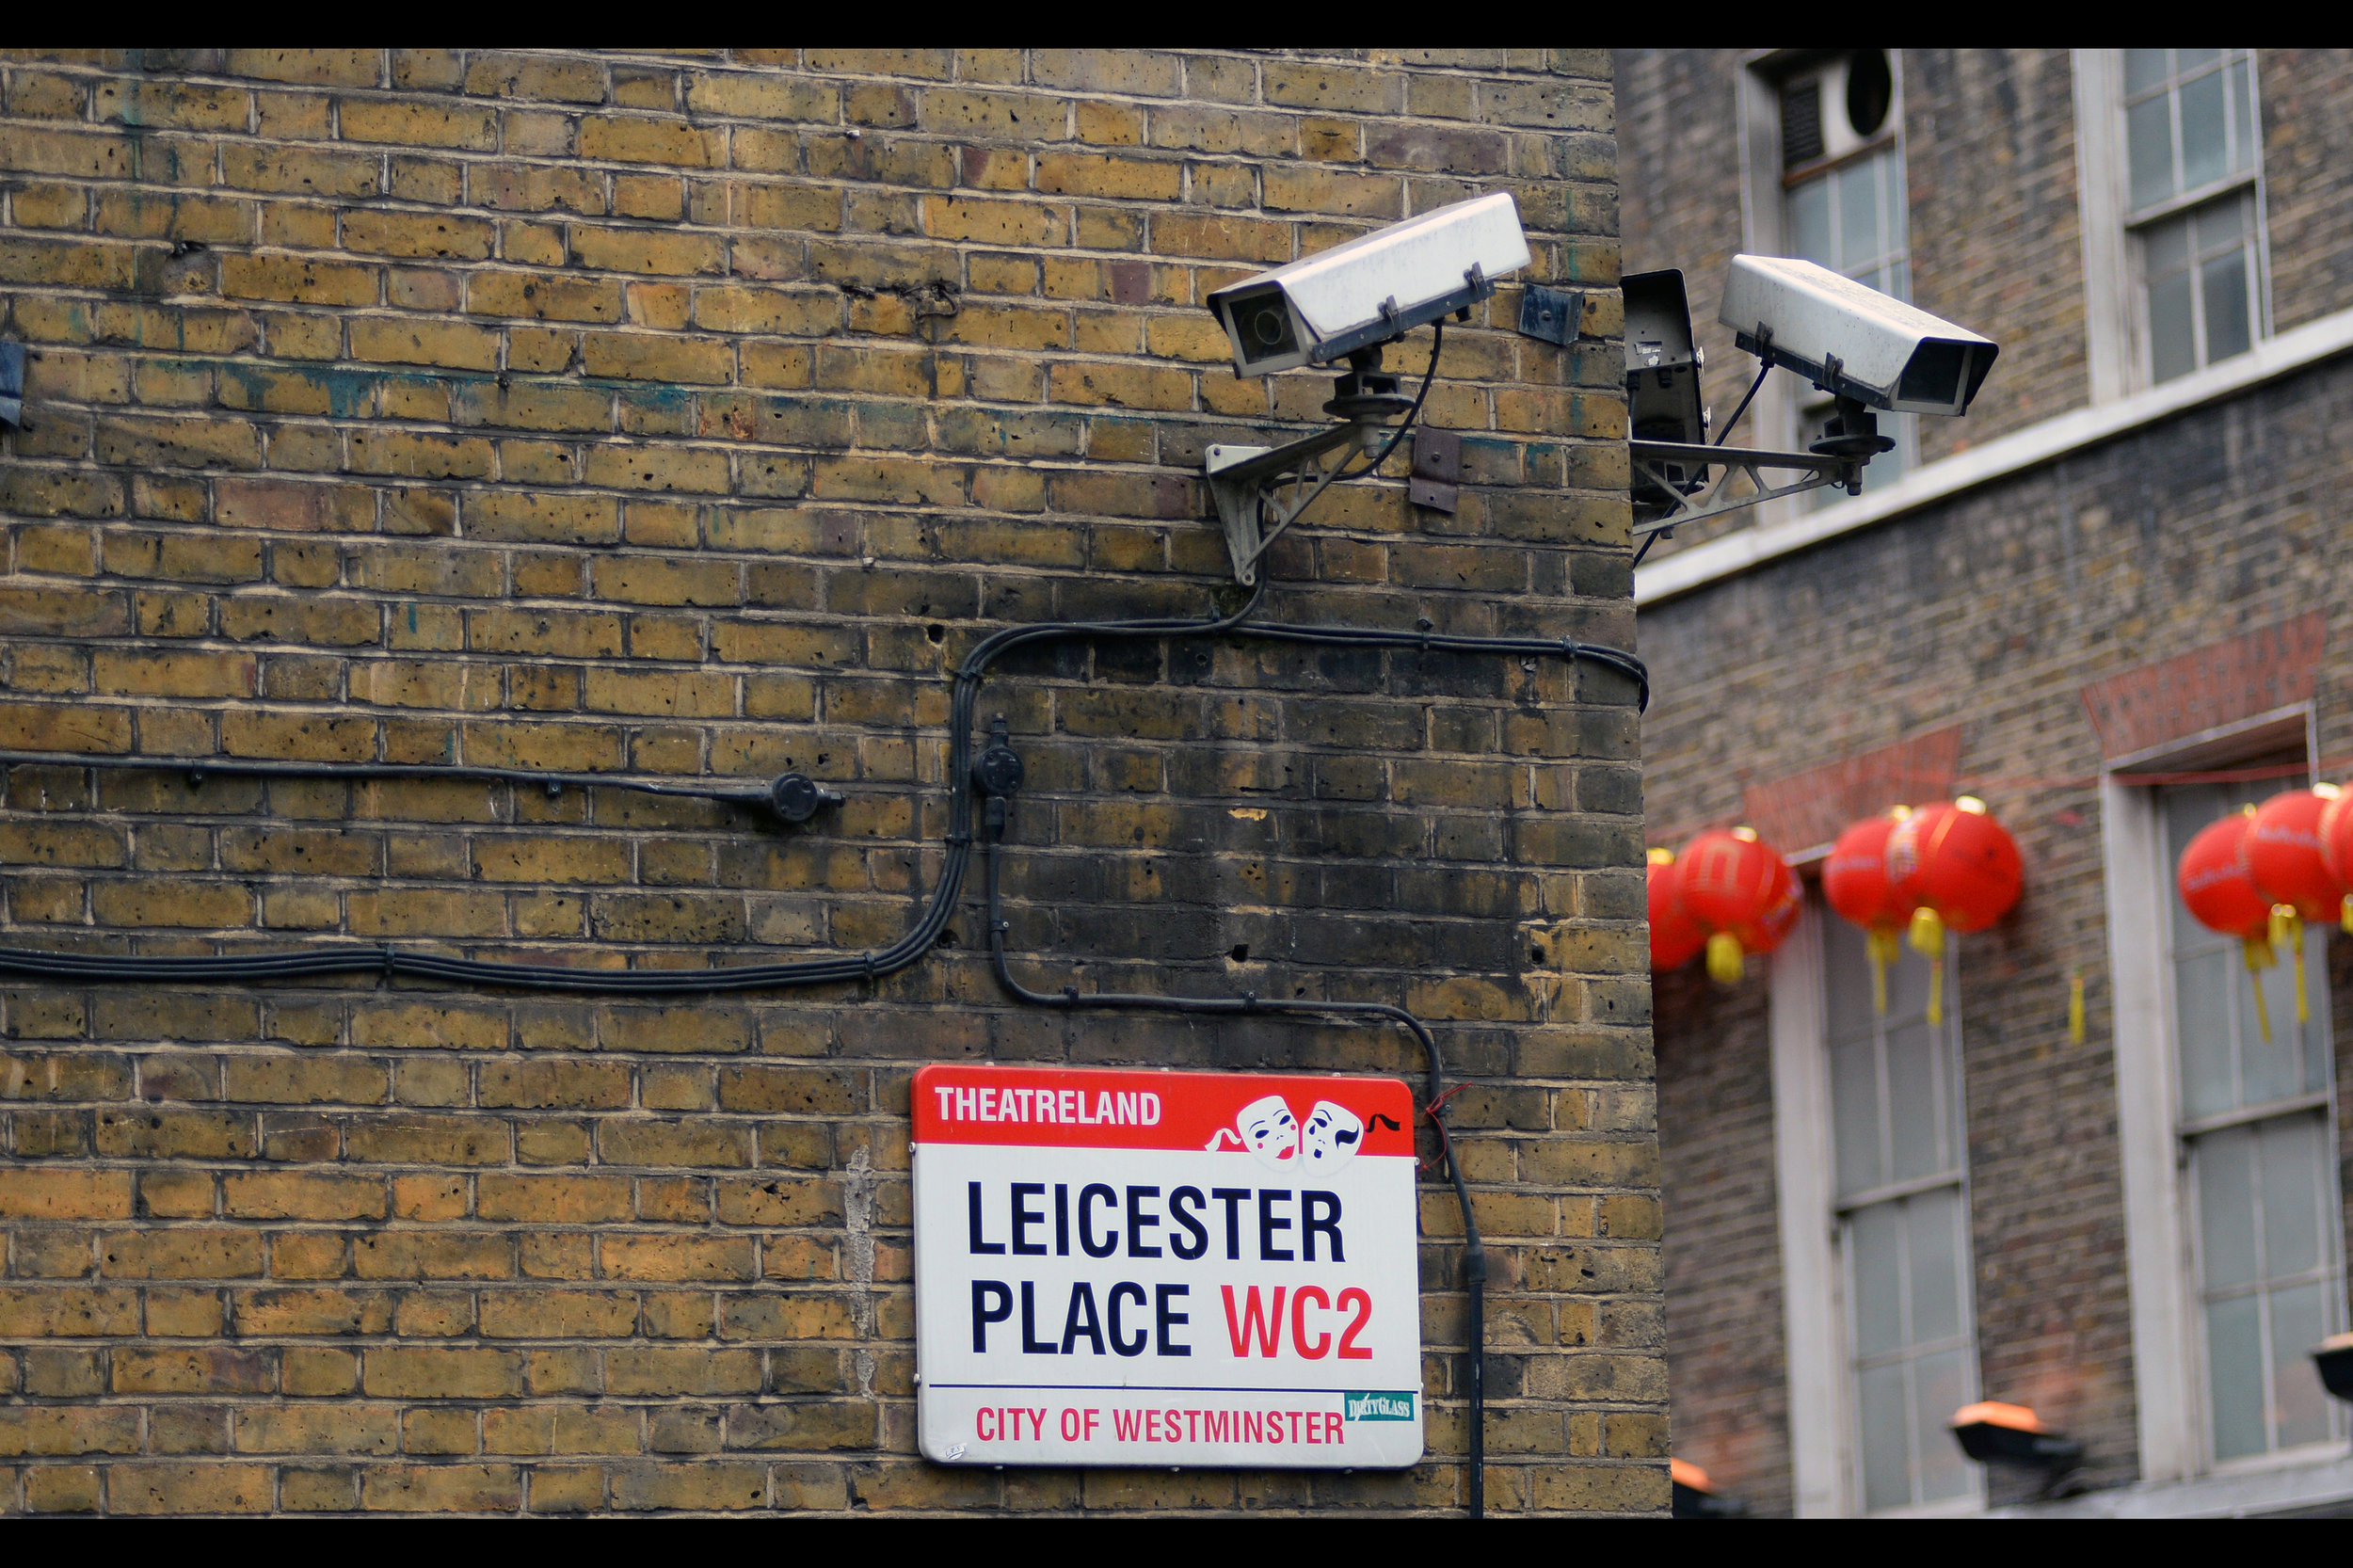 Leicester Place  is not the same as  Leicester Square ... but they're in the same cinematic universe, if you like.